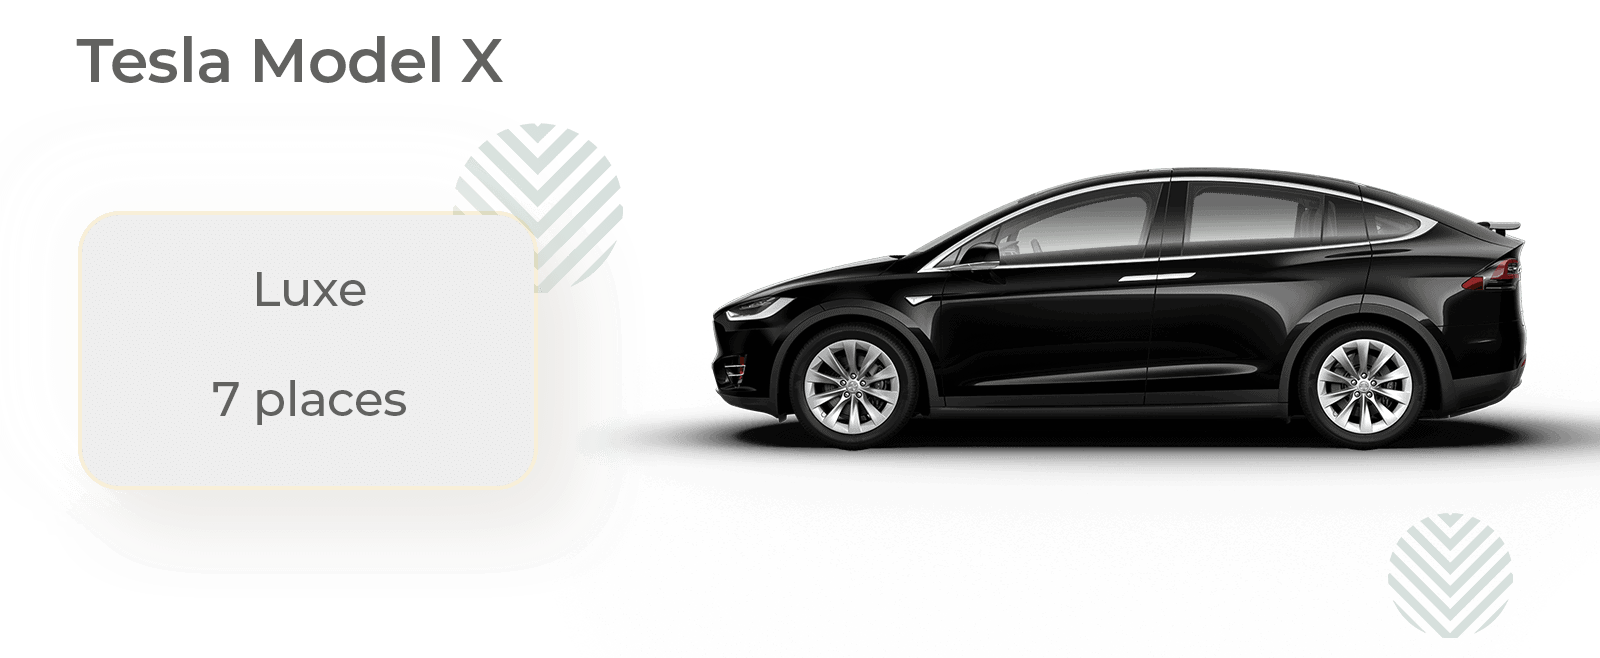 Rent a Tesla Model X with driver for car service and business trips. Enjoy this luxurious SUV (equivalent to a Mercedes S Class or BMW 7 Series) for your private transfers or limo service at airports and train stations for any distance.